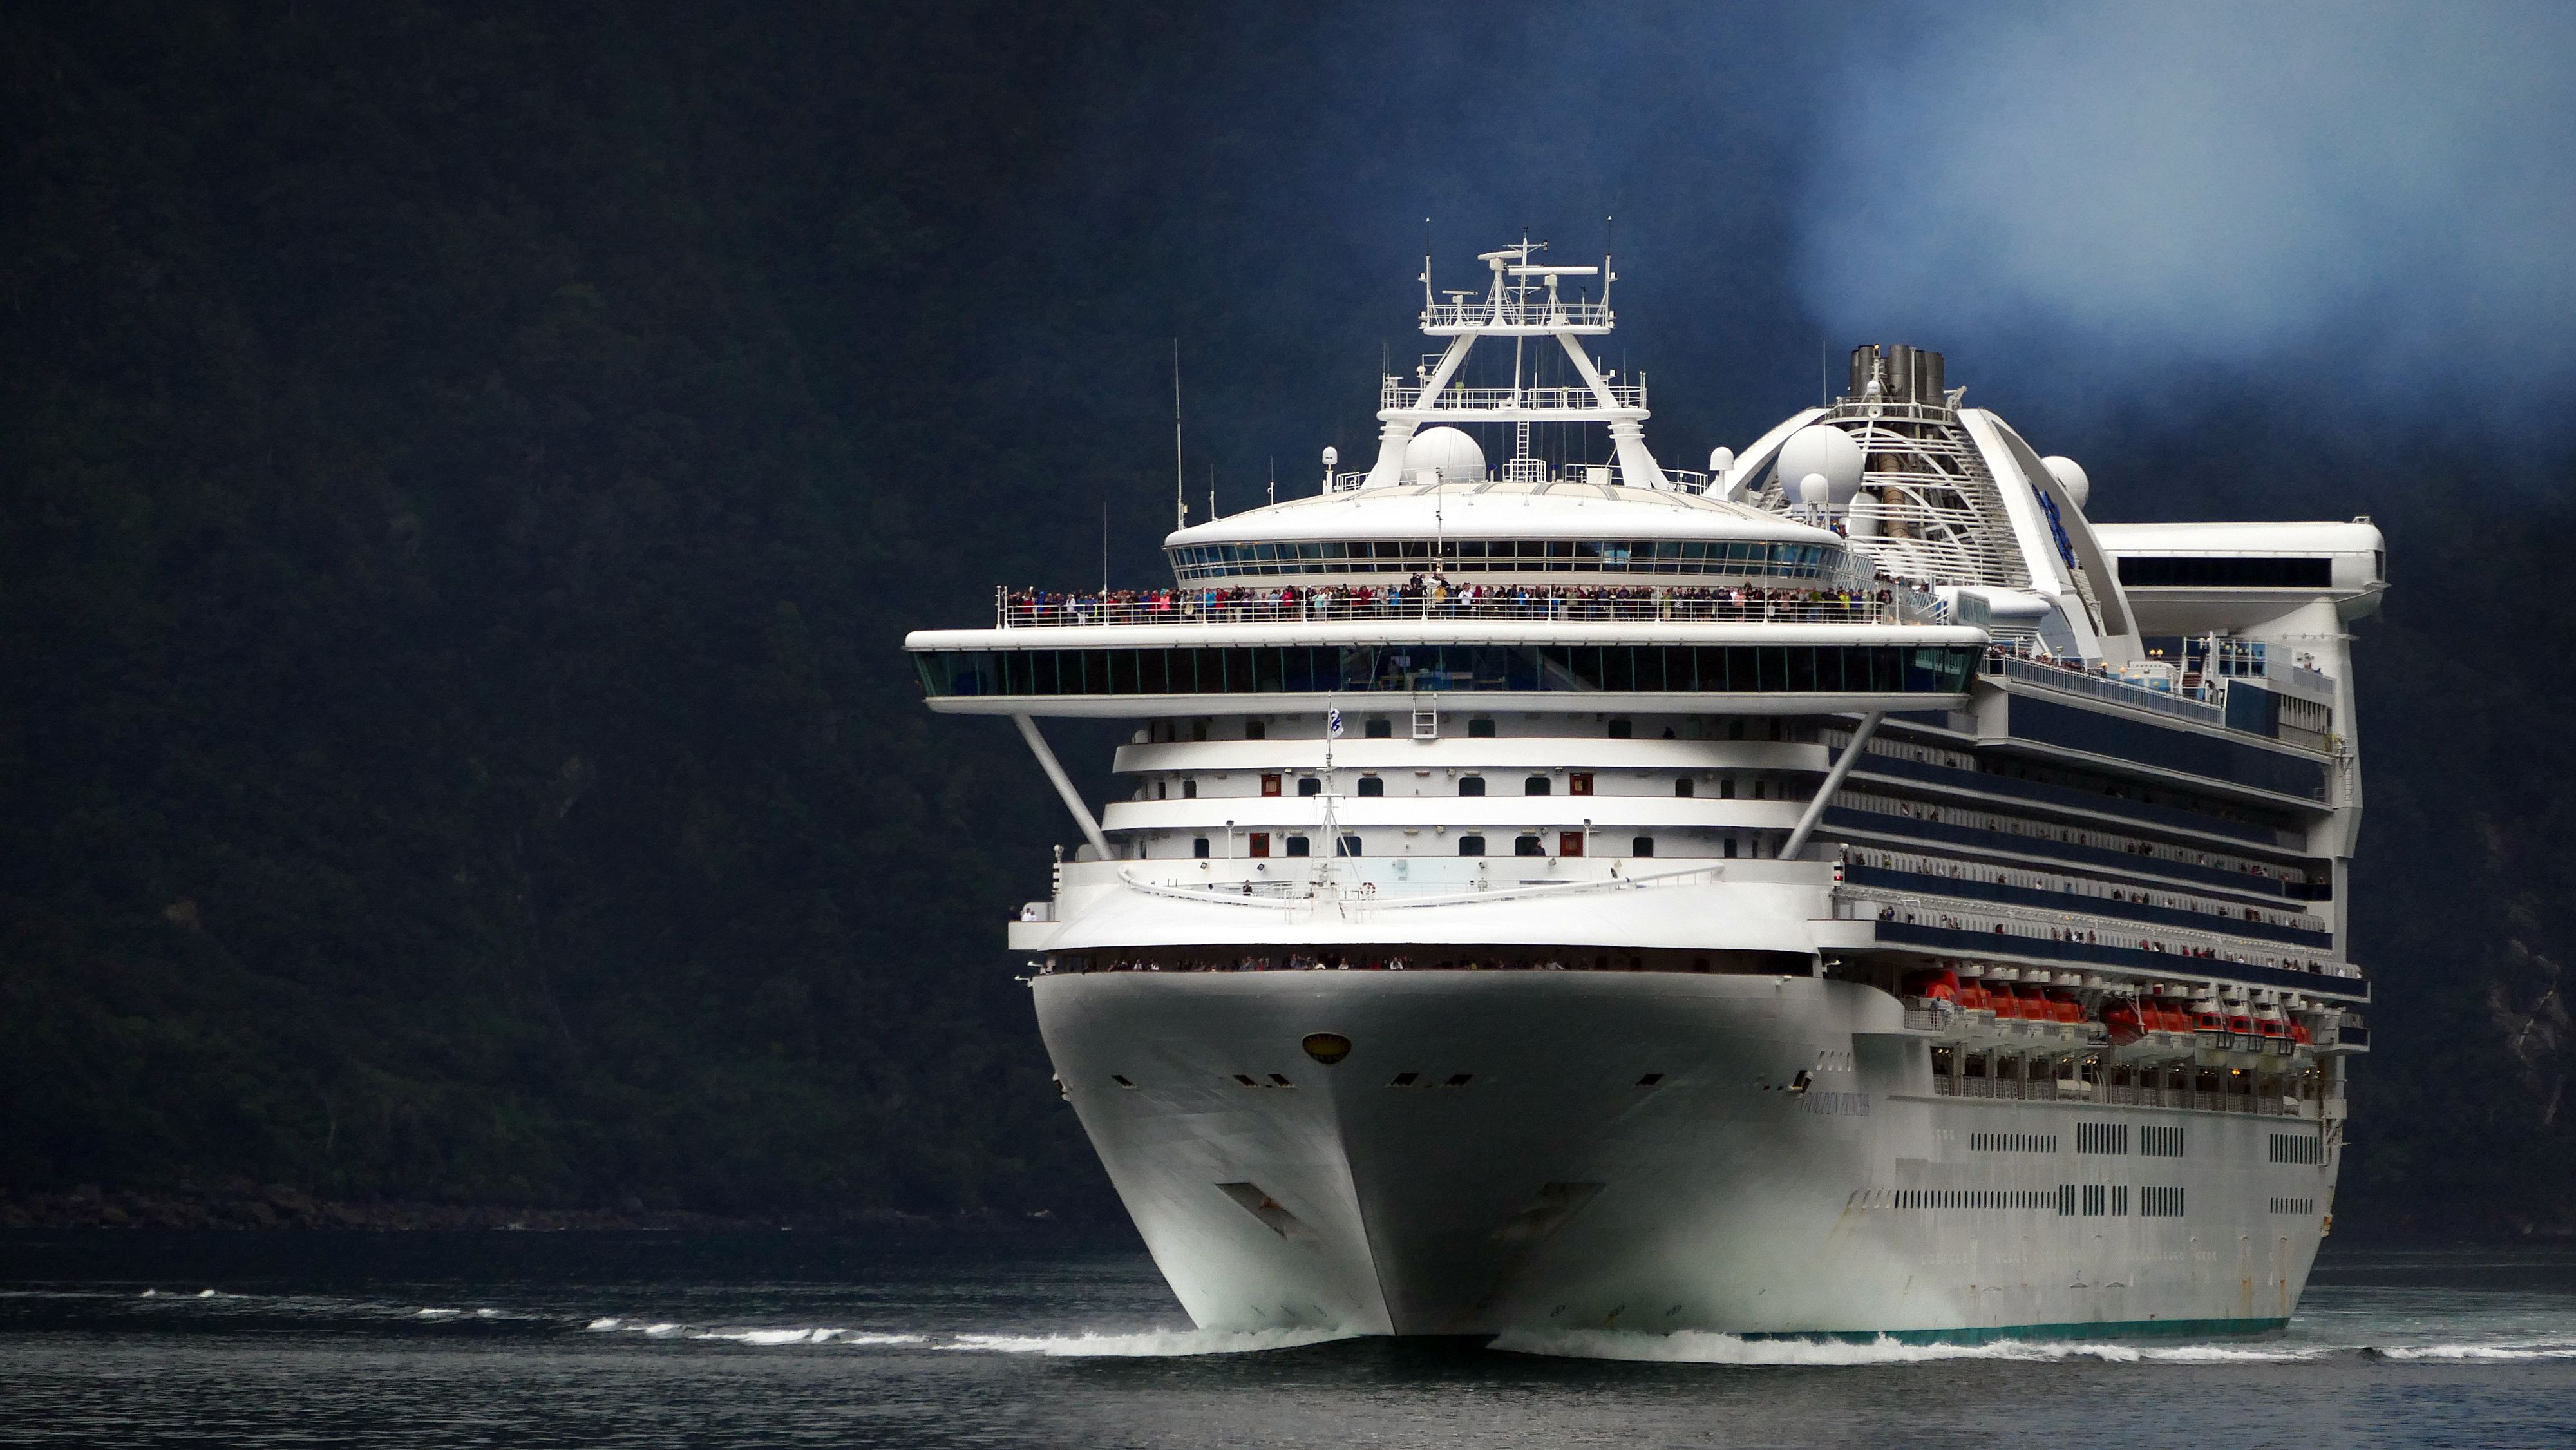 Golden Princess on Milford Sound., Super, Travel, Vehicle, Zoom, HQ Photo